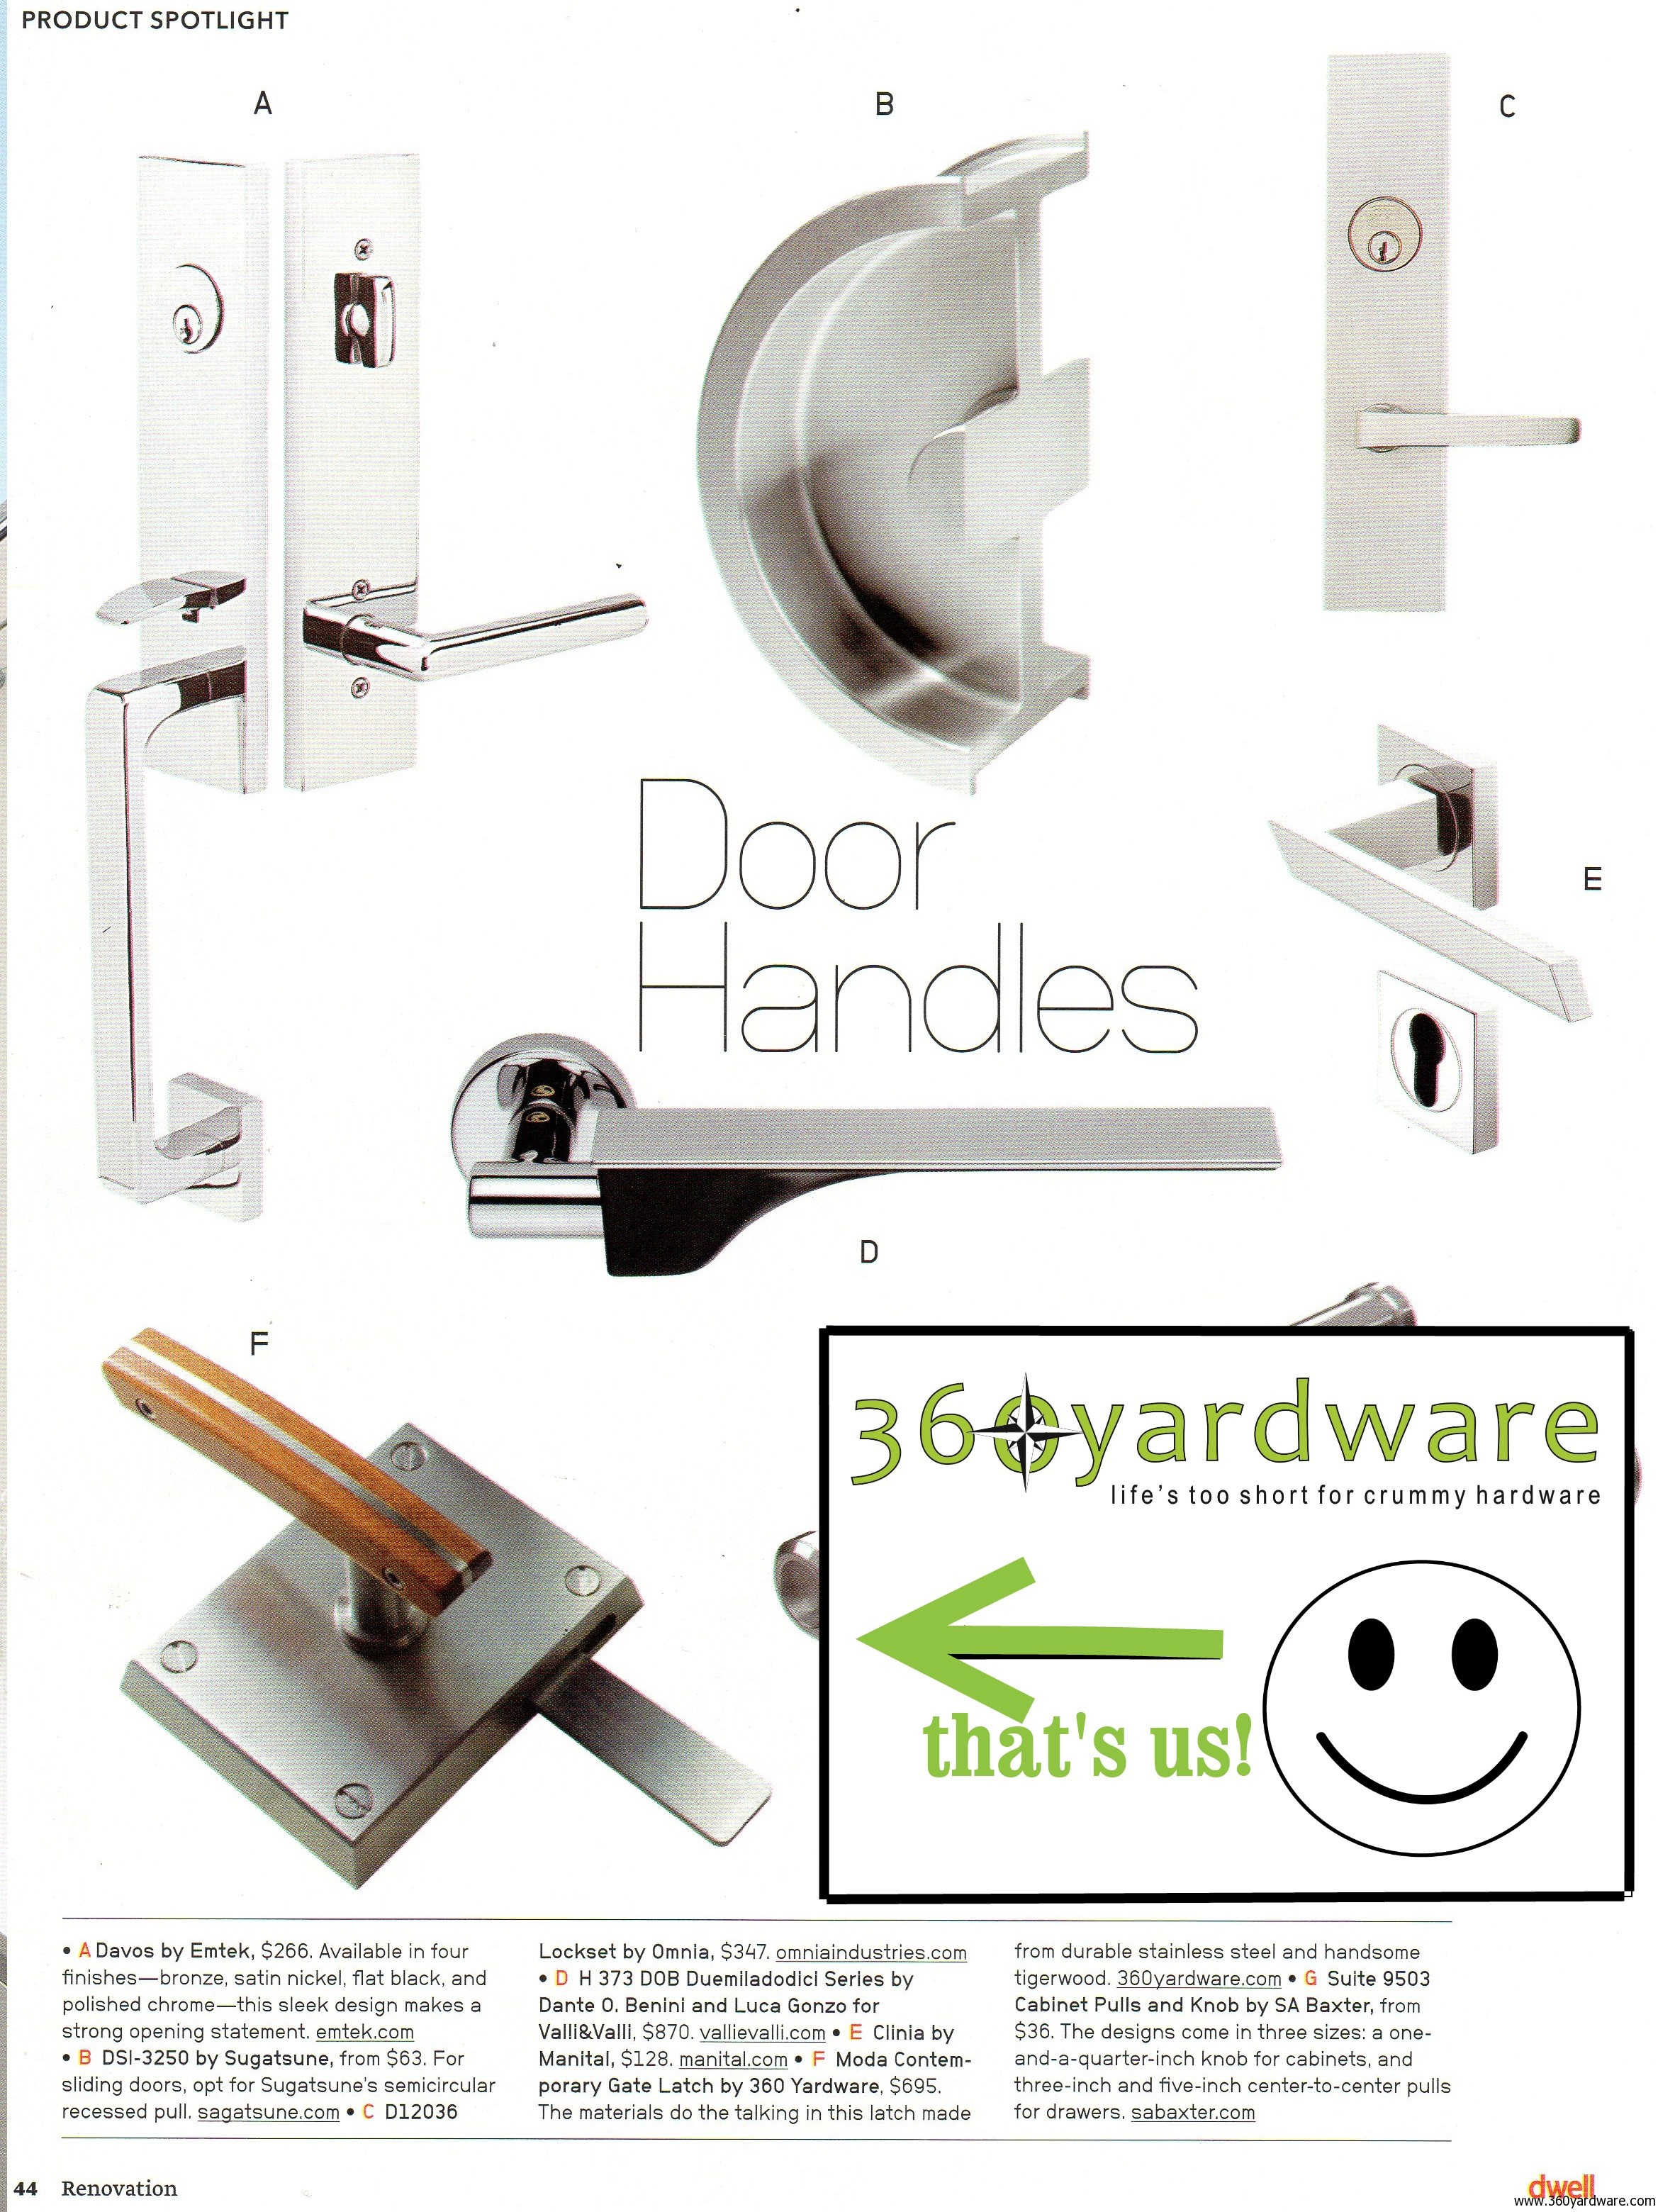 """360 Yardware's Moda Contemporary Gate Latch on Page 44 of Dwell Magazine's Special Issue """"Renovation"""""""